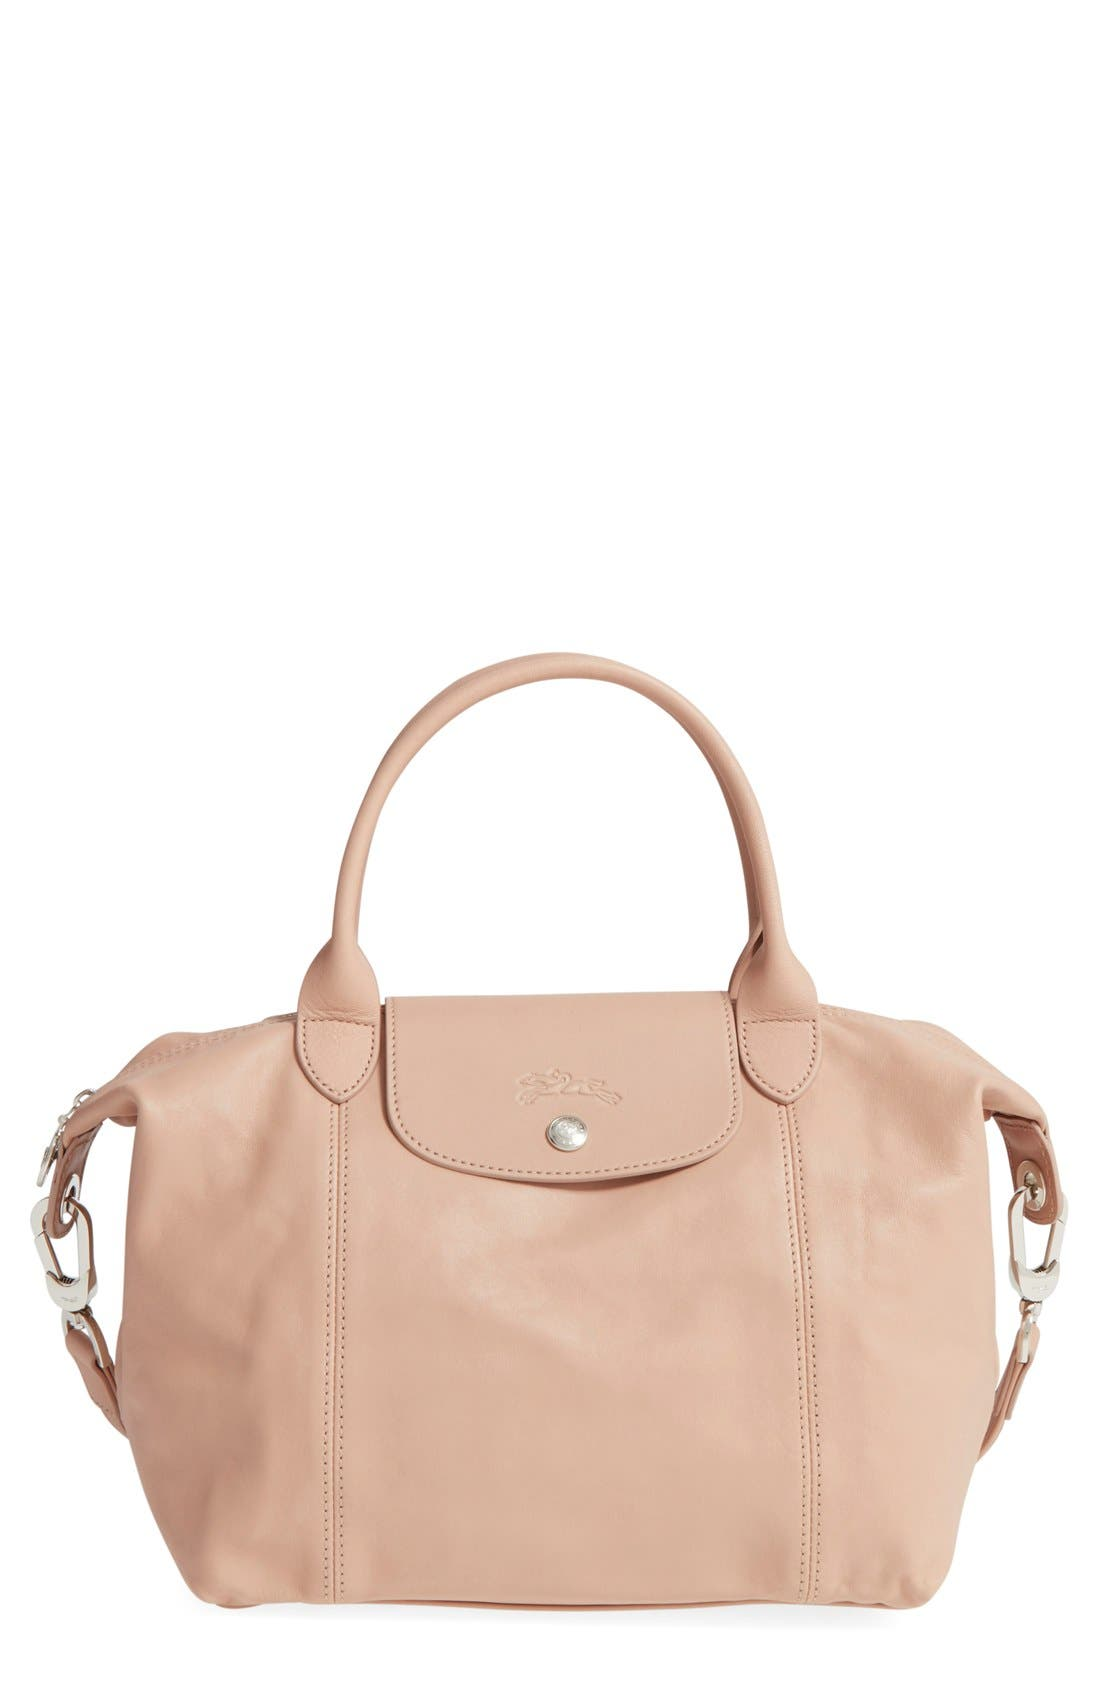 Small 'Le Pliage Cuir' Leather Top Handle Tote,                             Main thumbnail 10, color,